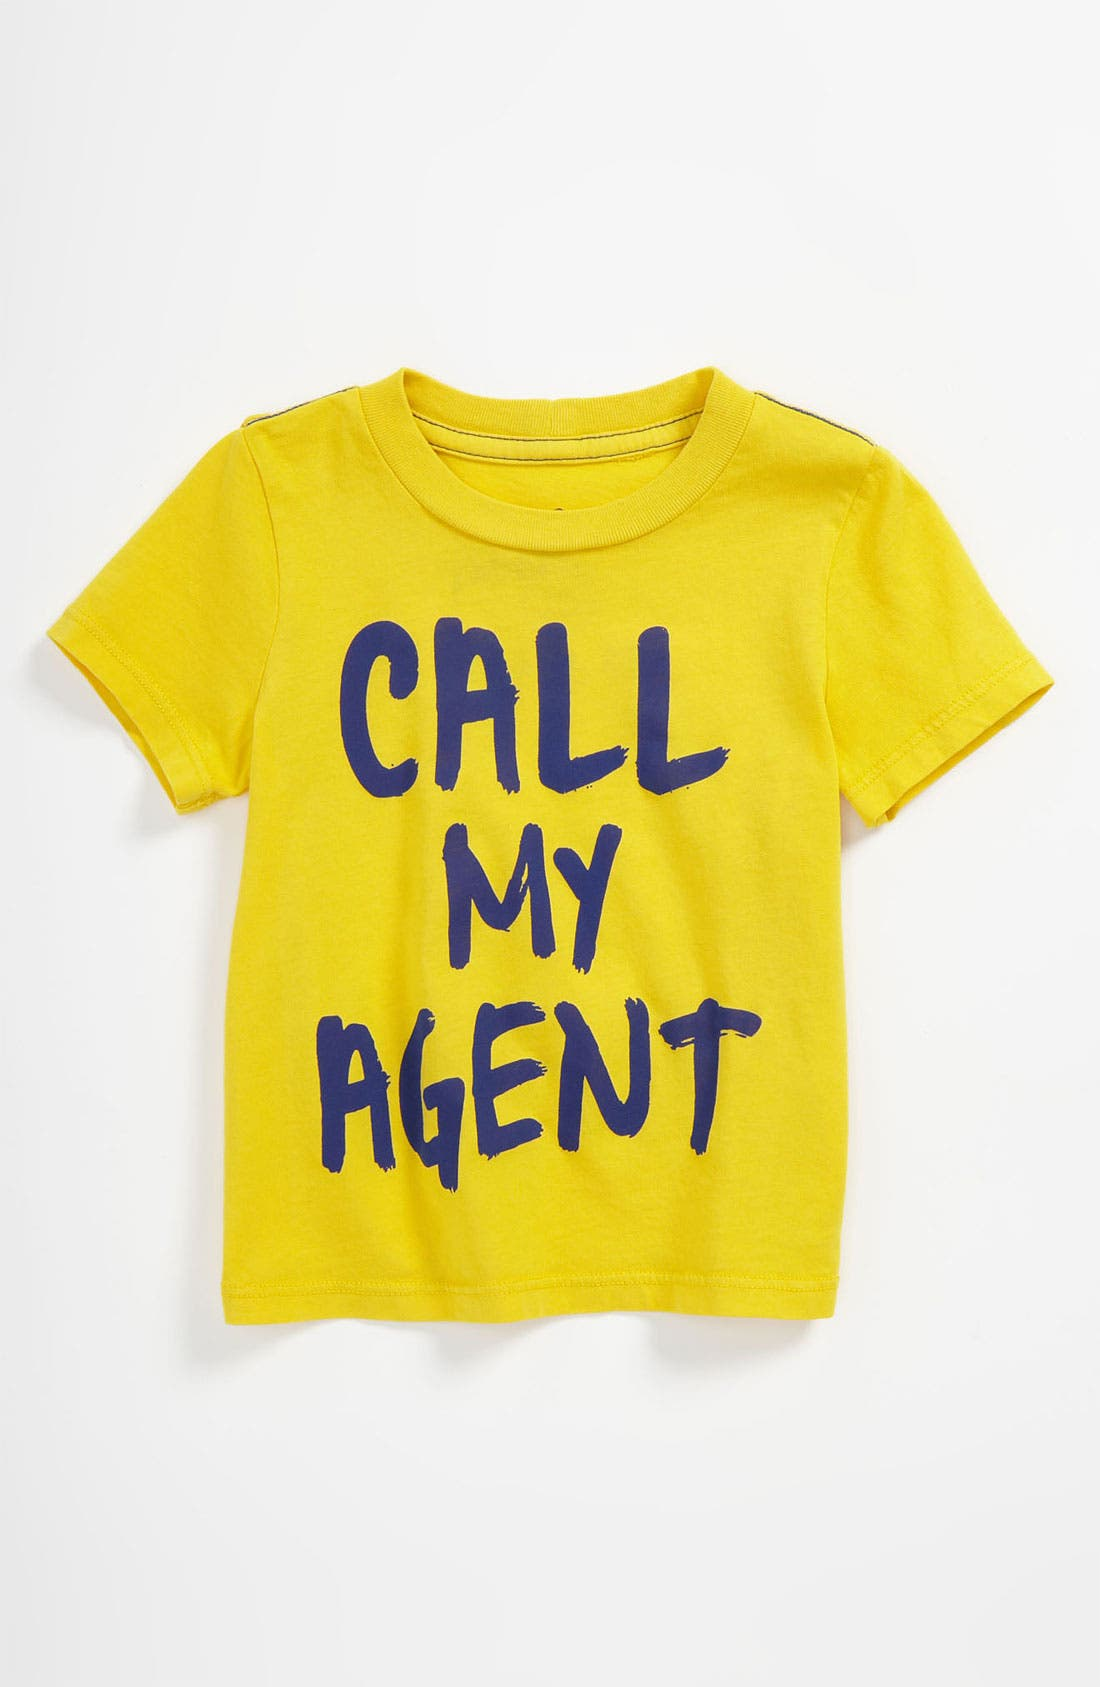 Alternate Image 1 Selected - Peek 'Call My Agent' Tee (Baby)